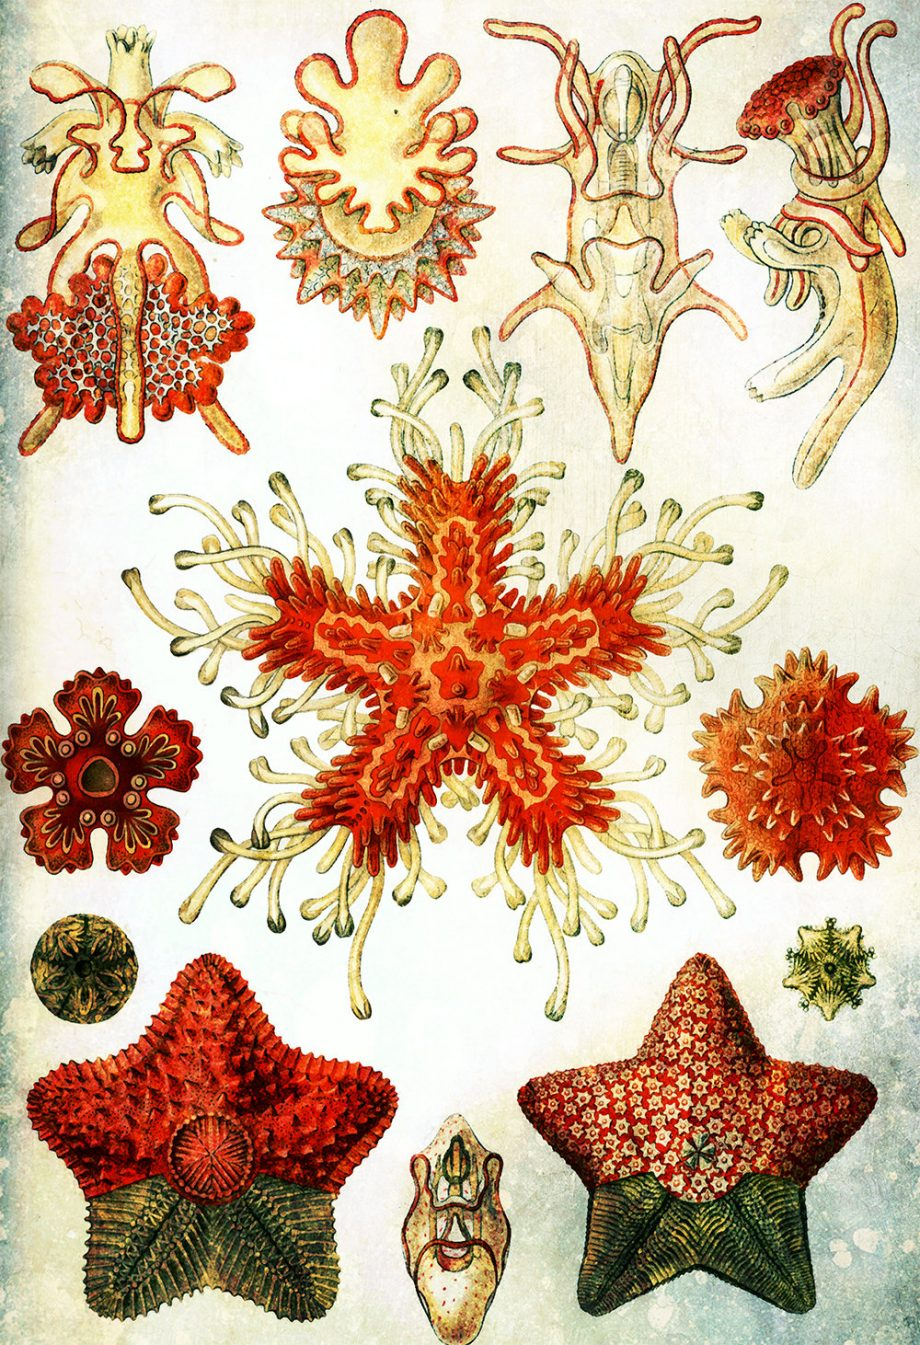 ernst-haeckel-asteridea-print-starfish-art-vintage-nautical-decor-ocean-wall-art-giclee-print-on-cotton-canvas-and-paper-canvas-5817b3094.jpg